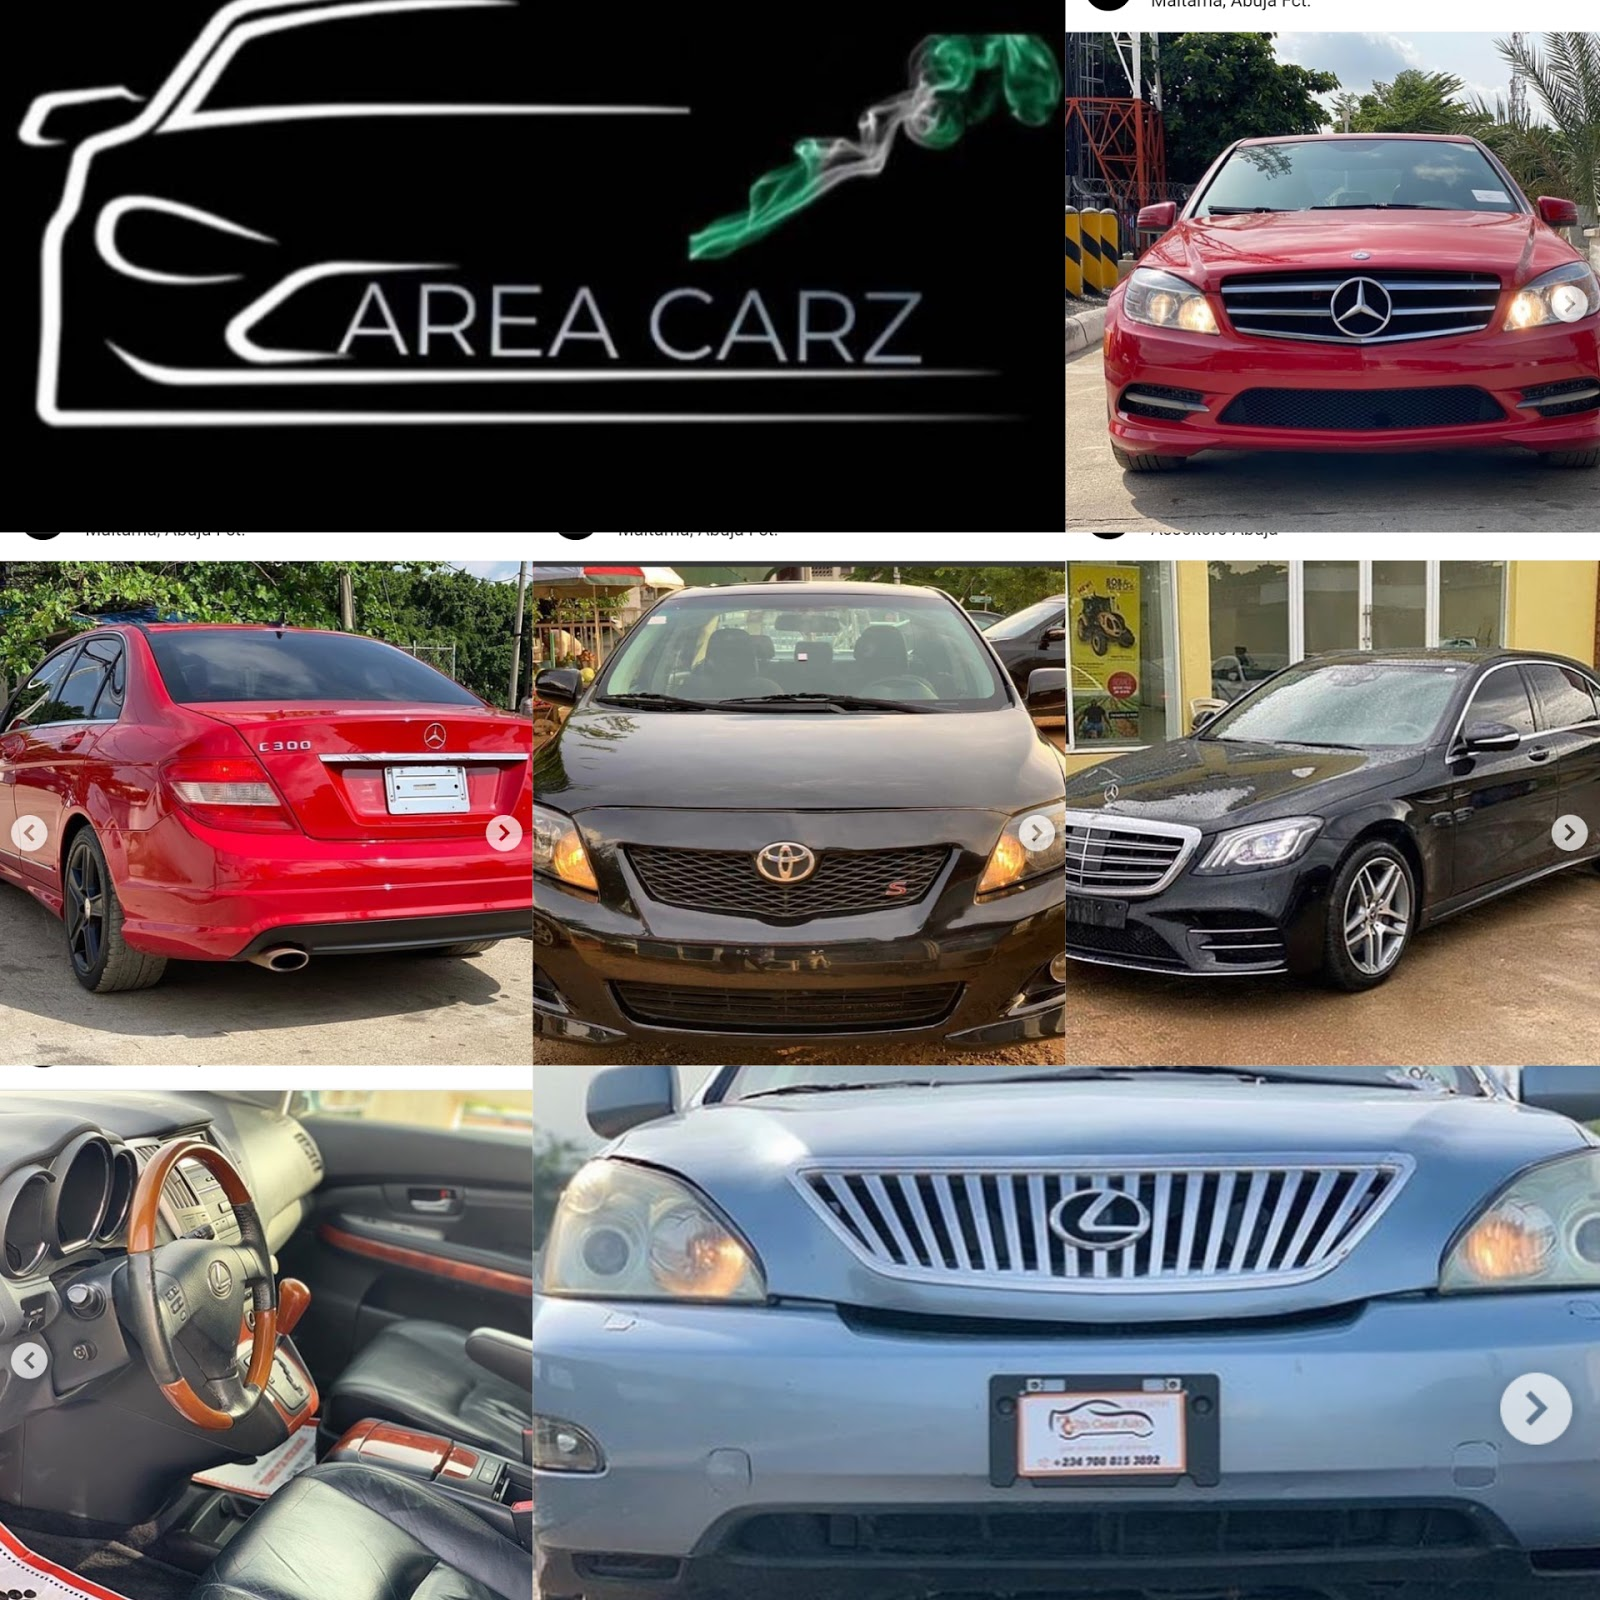 Area carz - we sell new and fairly used cars (see photos) #Arewapublisize